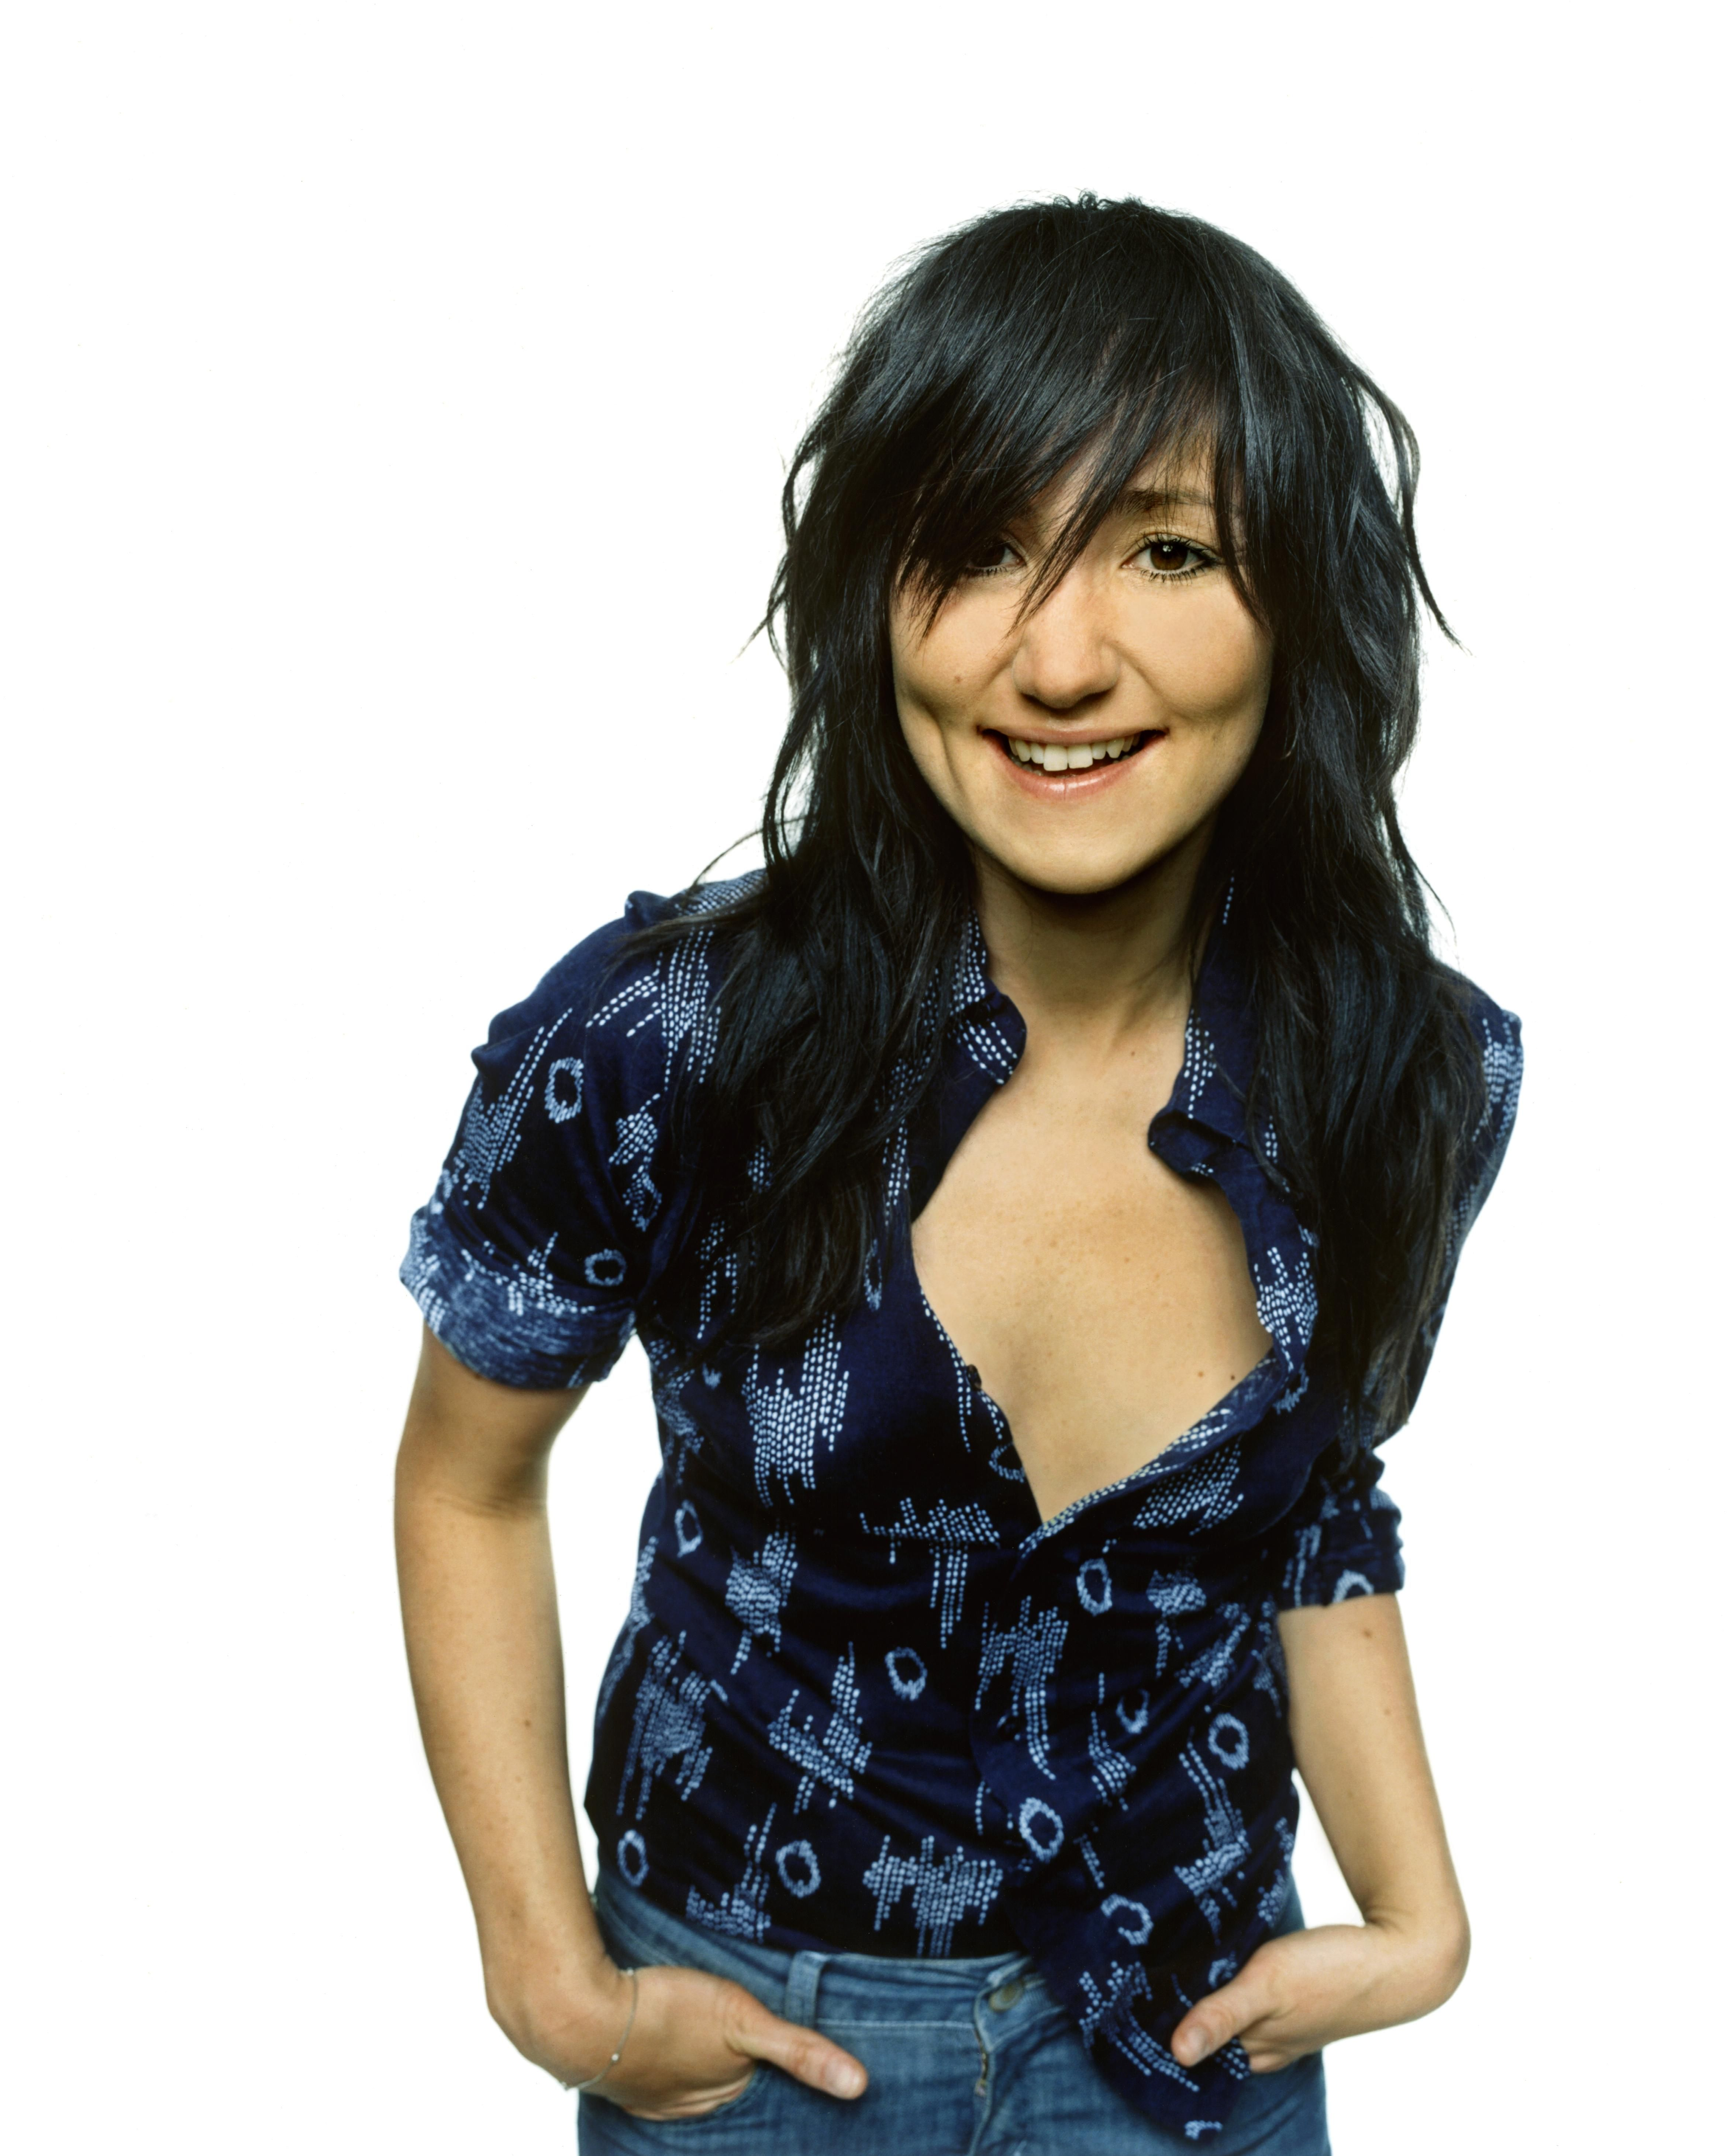 Kt Tunstall I So Want To Achieve The Tousled Look Kt Tunstall